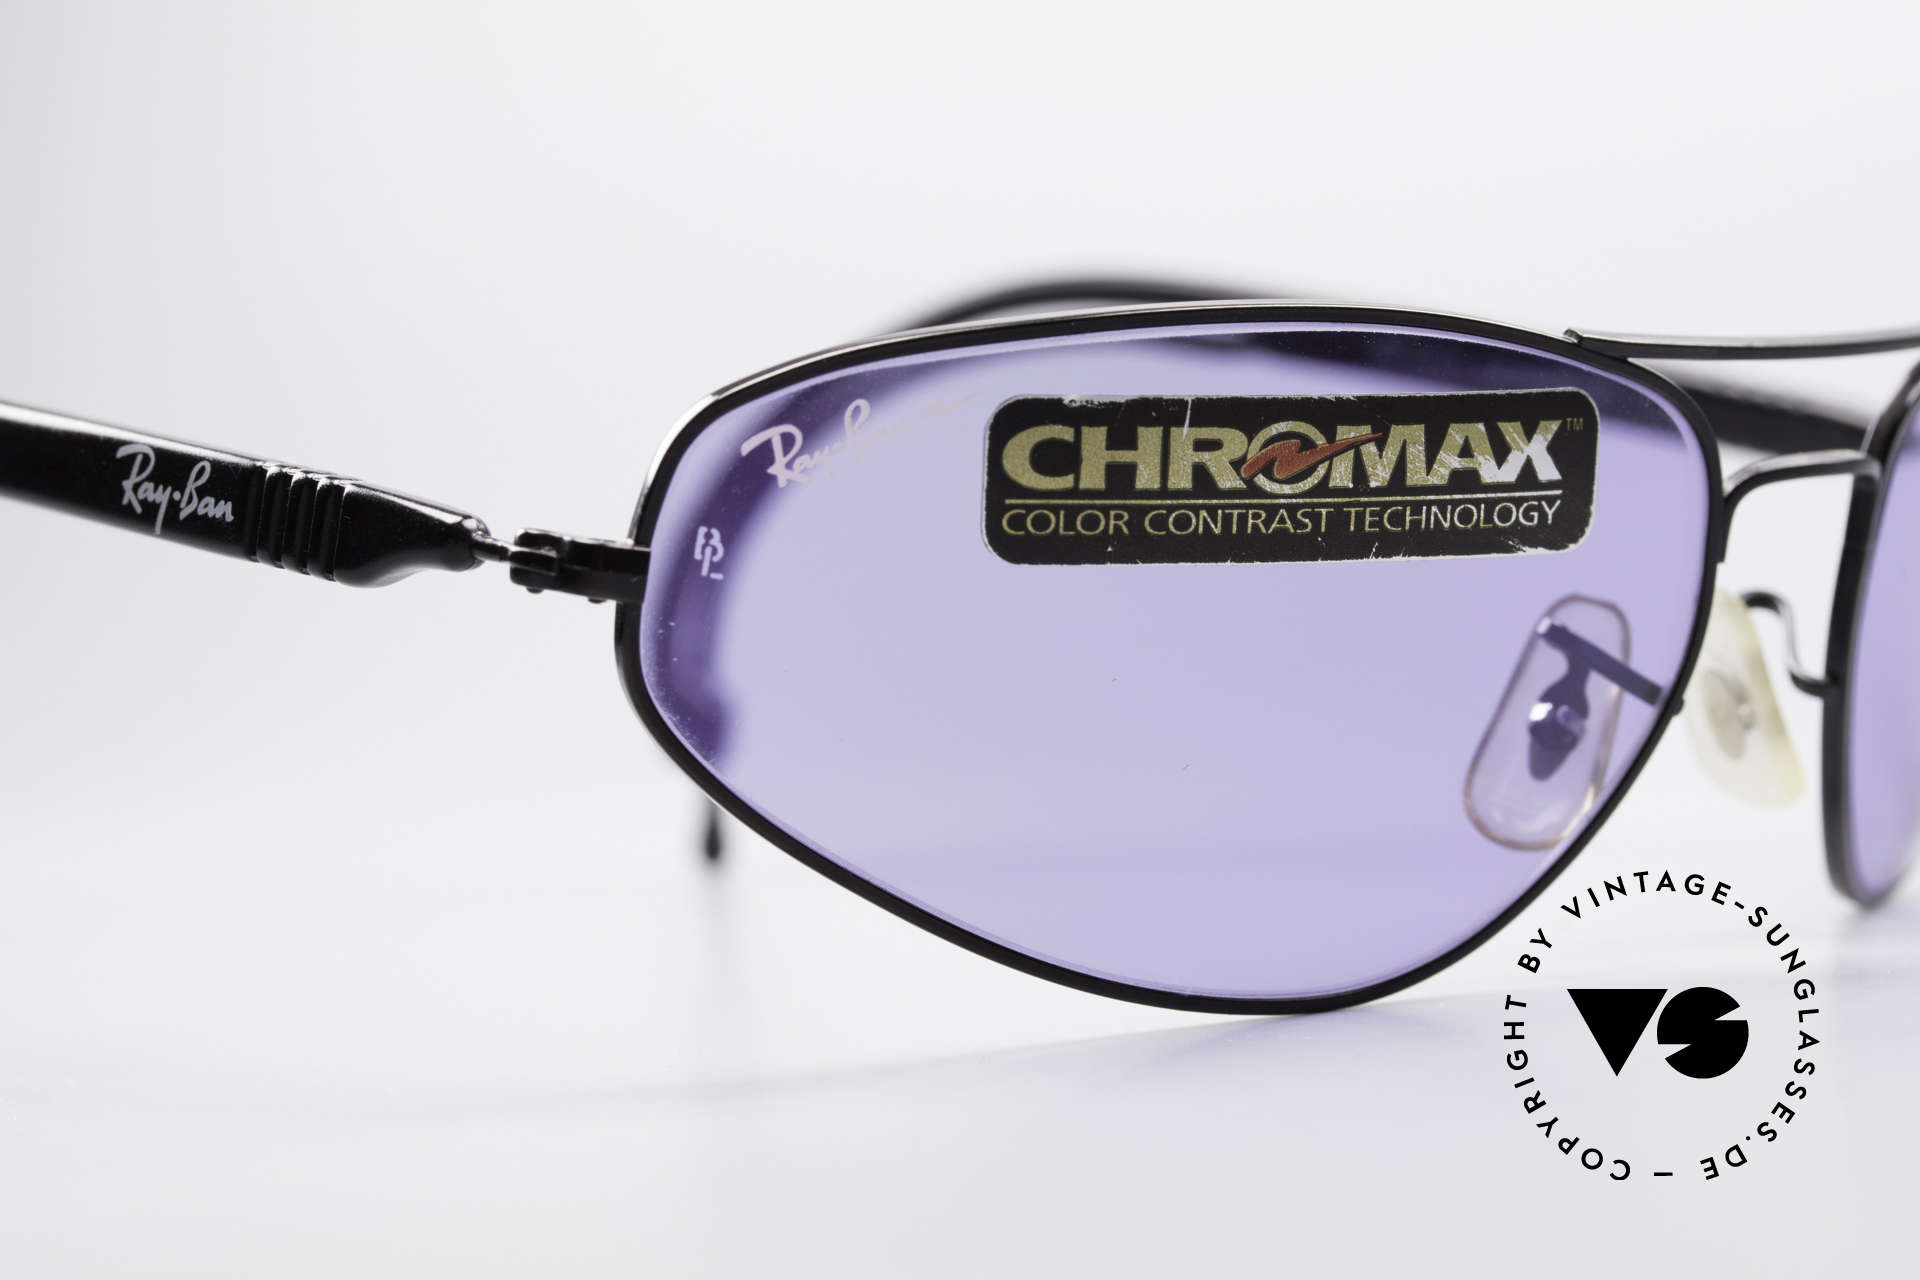 Ray Ban Sport Series 3 ACE Chromax B&L Sun Lenses, orig. name: RB Sport Series III, W1739, ACE, 67mm, Made for Men